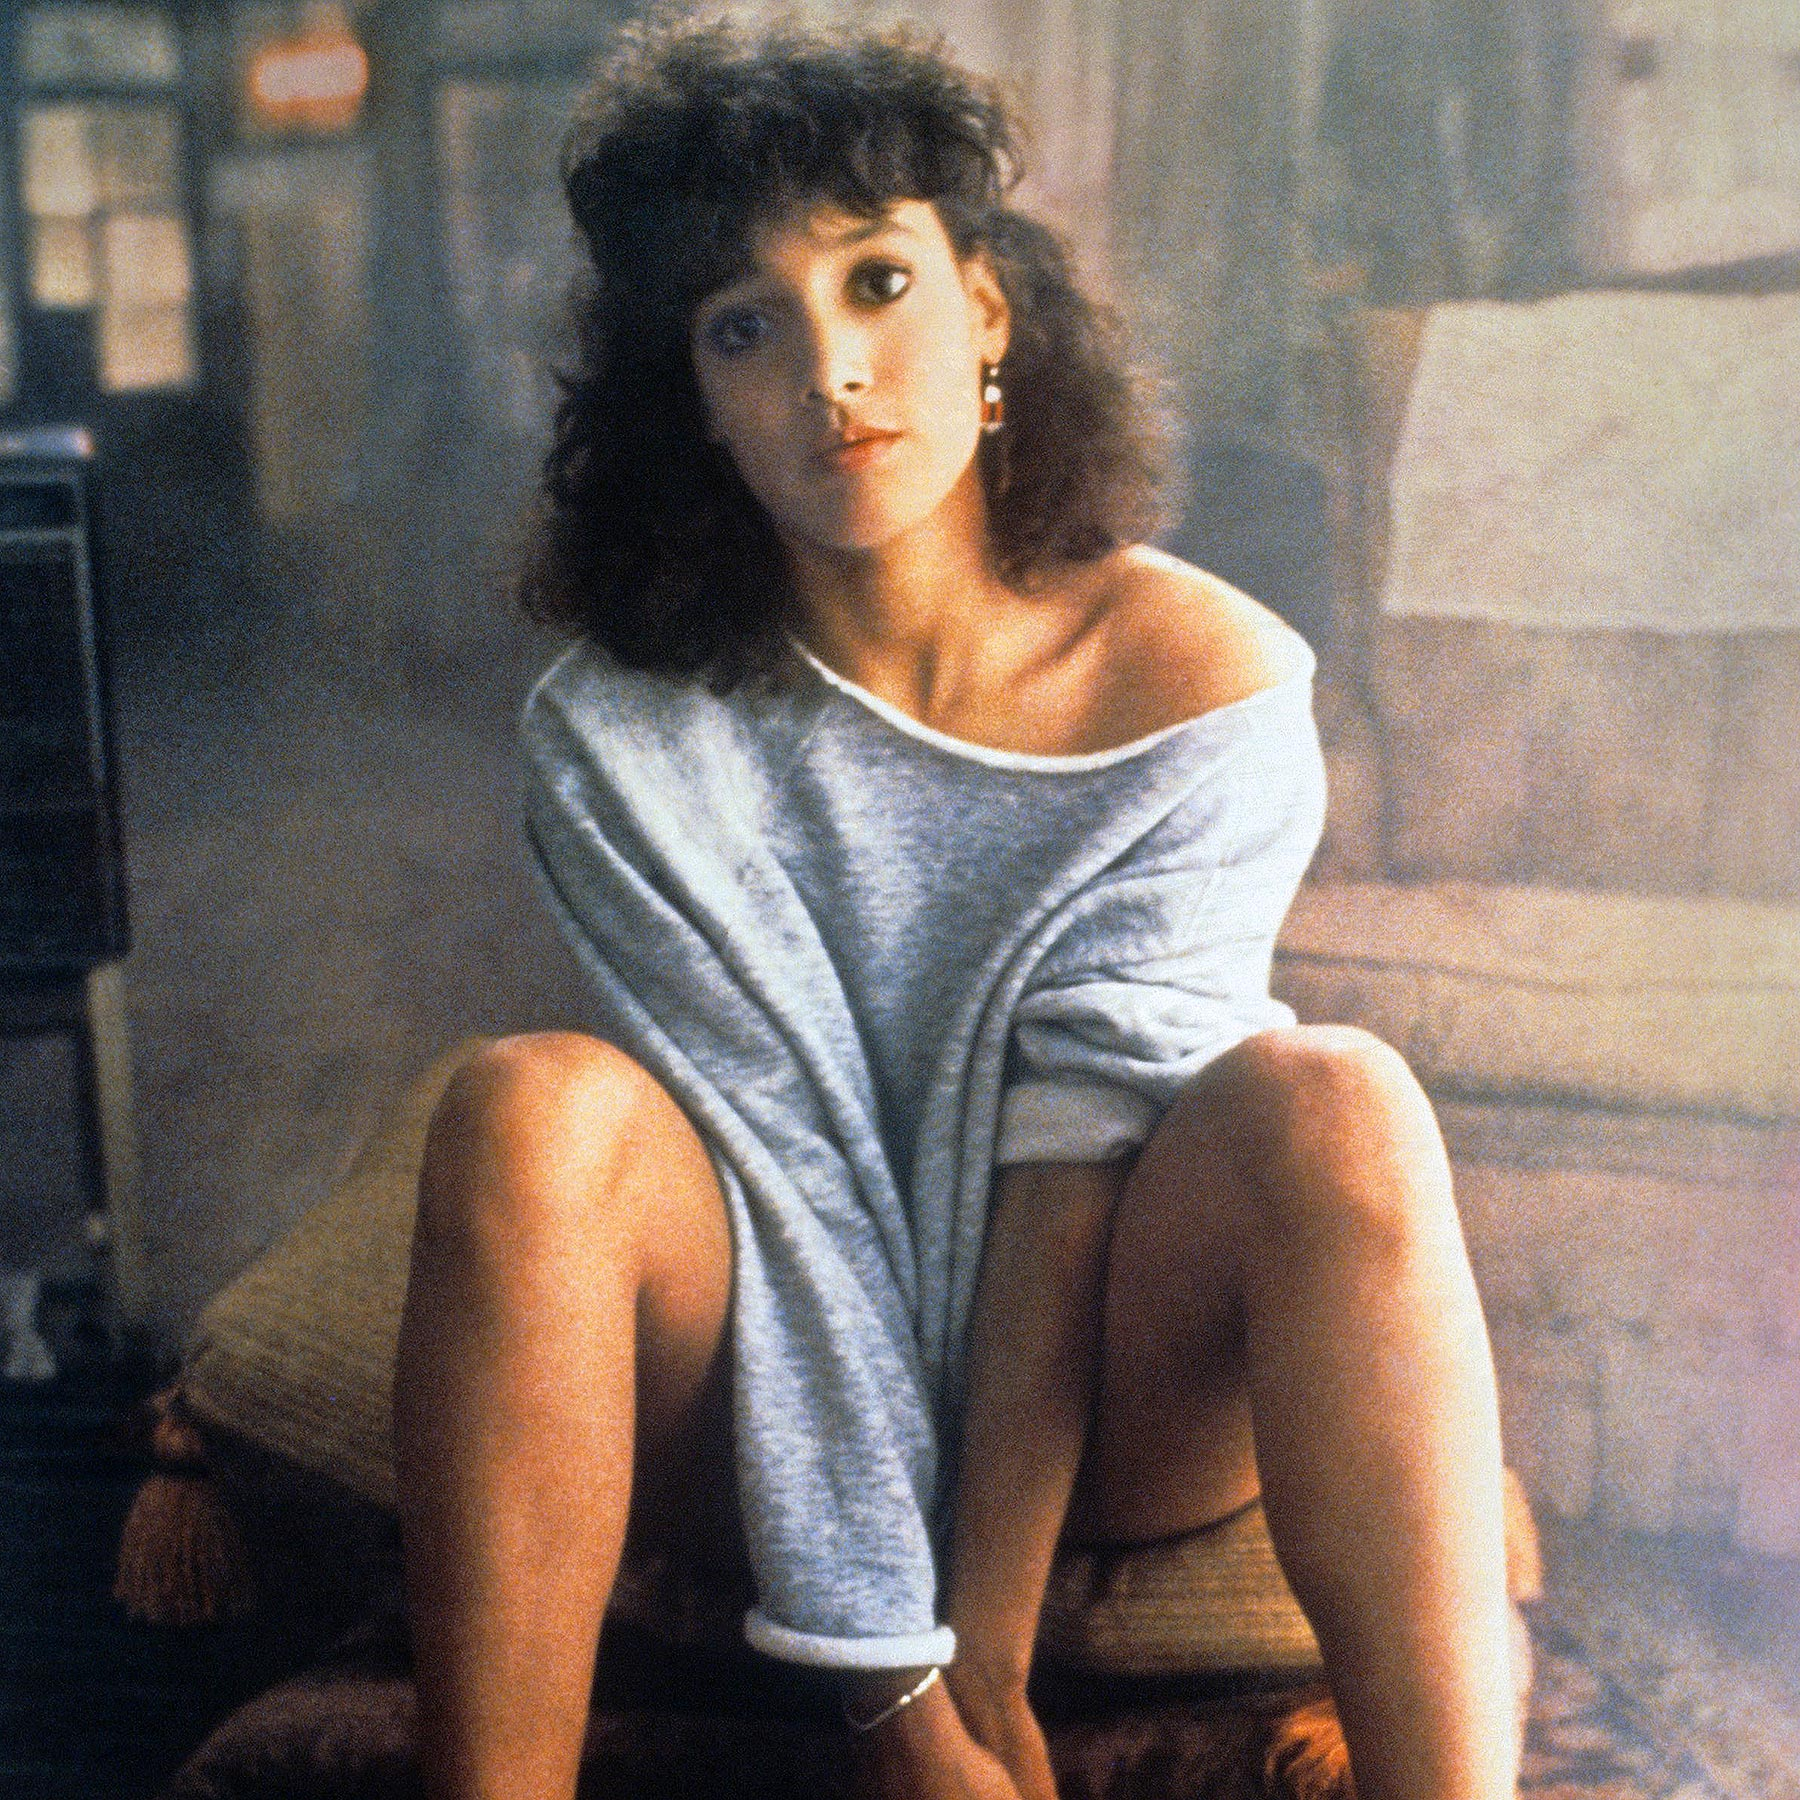 FLASHDANCE, Jennifer Beals, 1983, (c) Paramount/courtesy Everett Collection